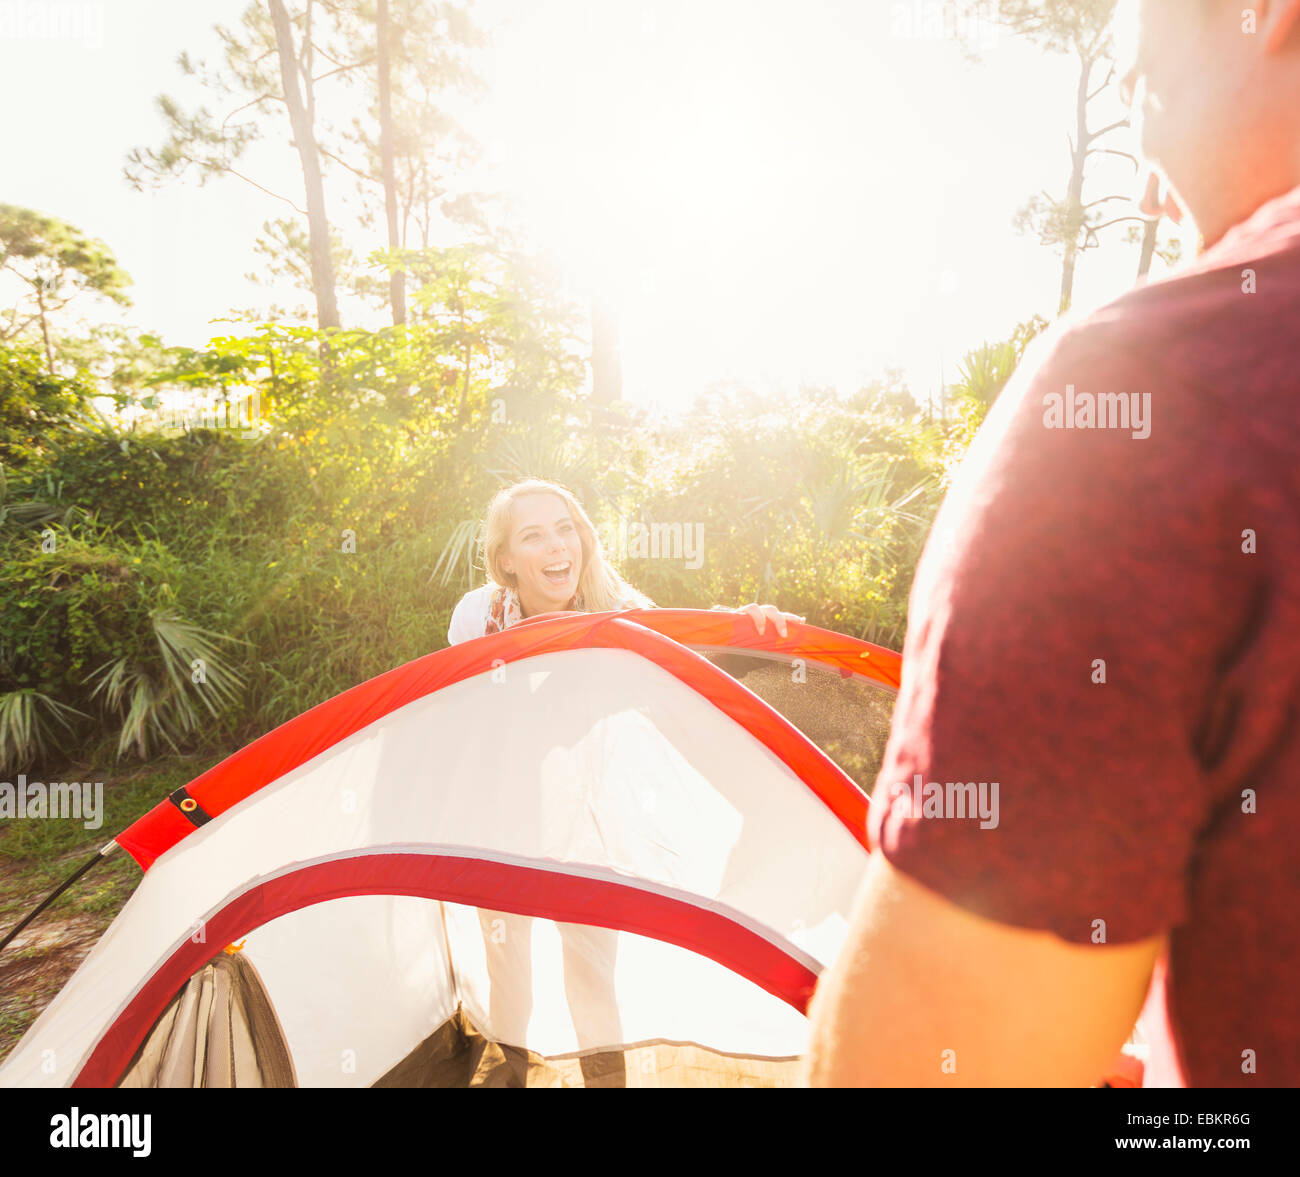 USA, Florida, Tequesta, Couple setting up tent in forest Stock Photo